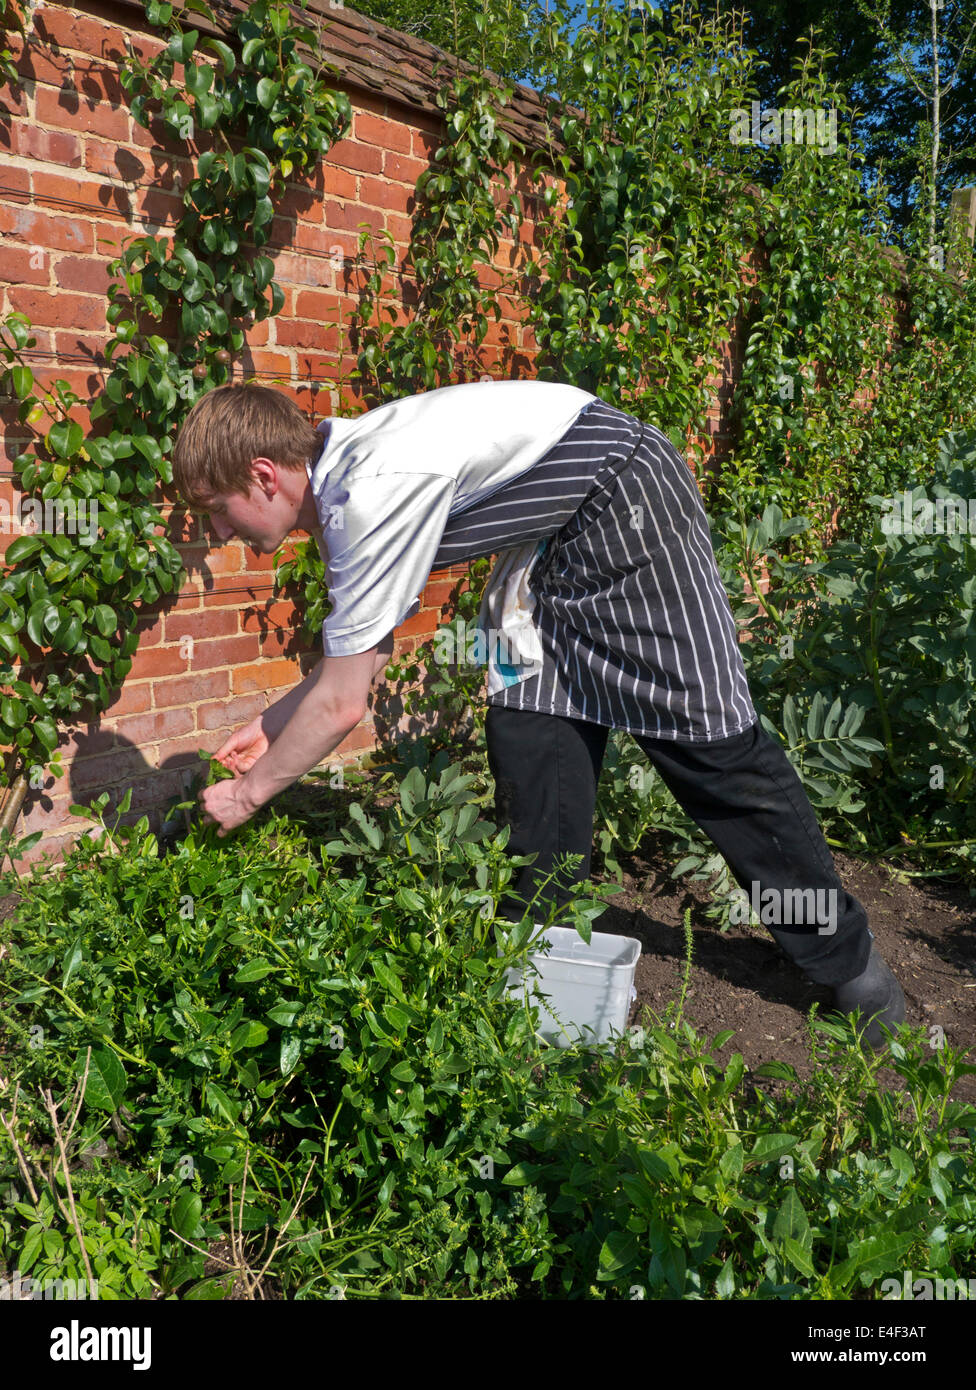 Chefs buying fresh herbs - Stock Photo Young Commis Chef Picking Fresh Herbs In The Kitchen Garden Ready For The Restaurant Evening Service